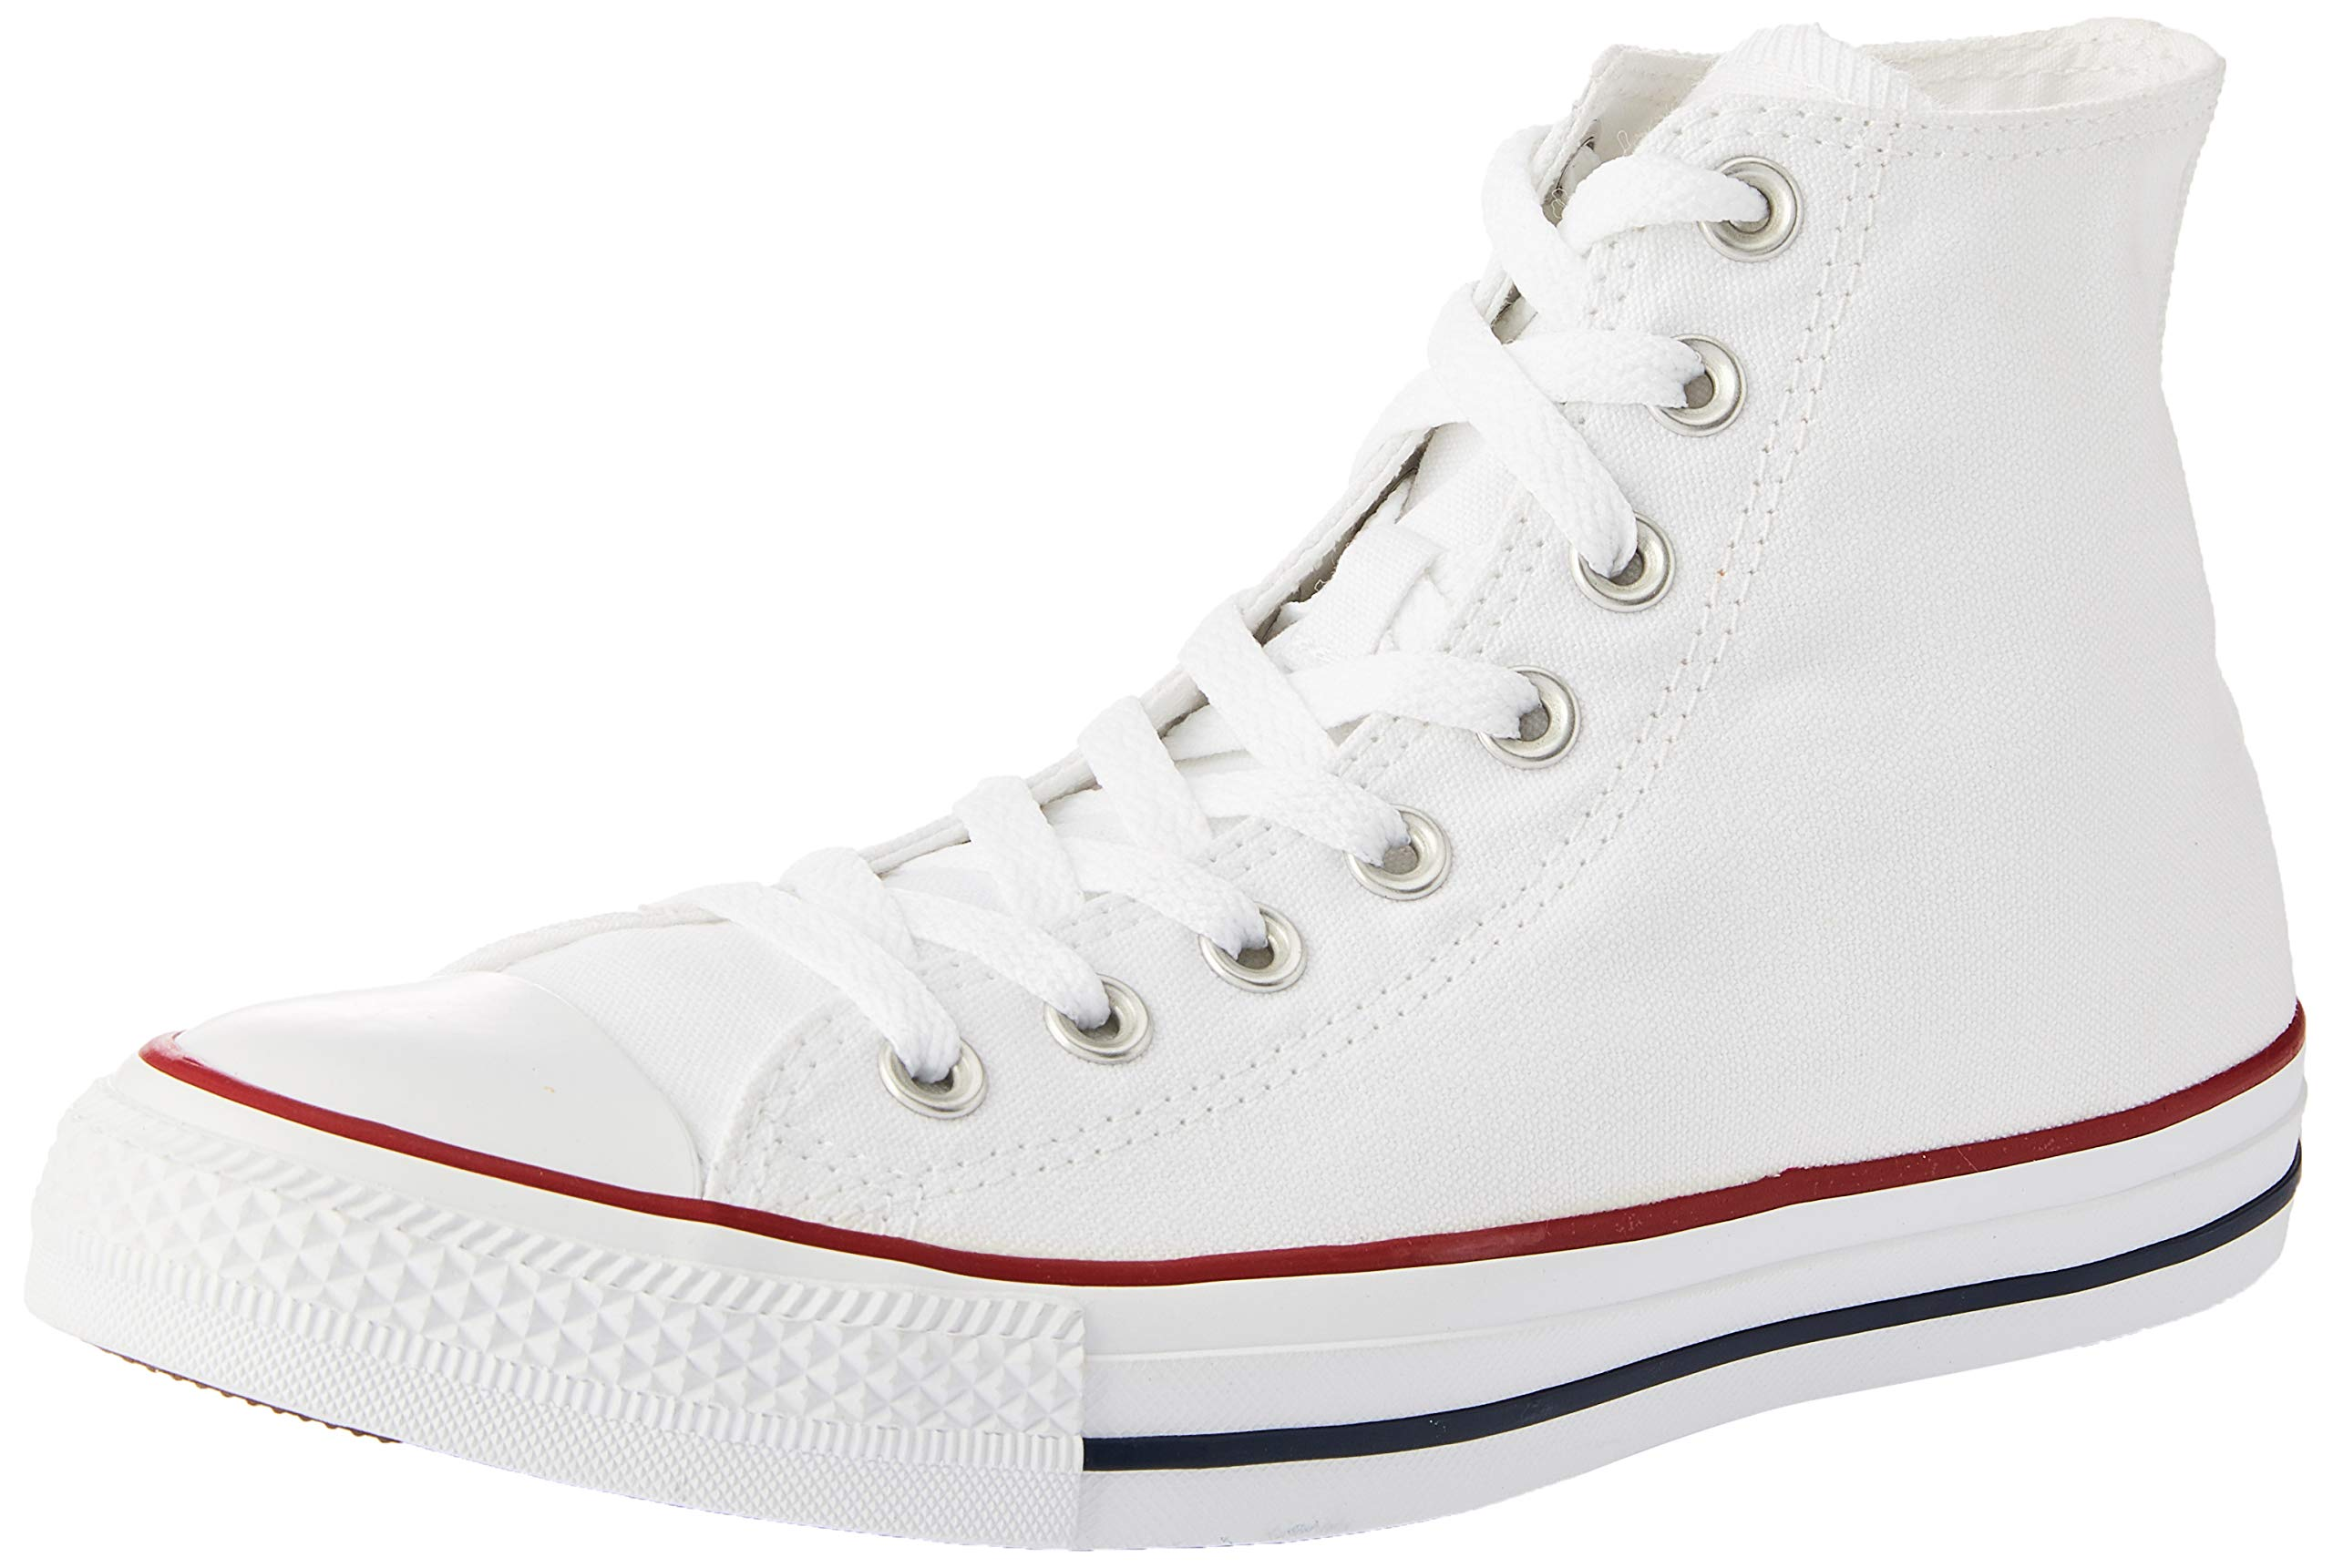 Converse Unisex Optical White M7650 - HI Top Sneaker Optical White Size 4